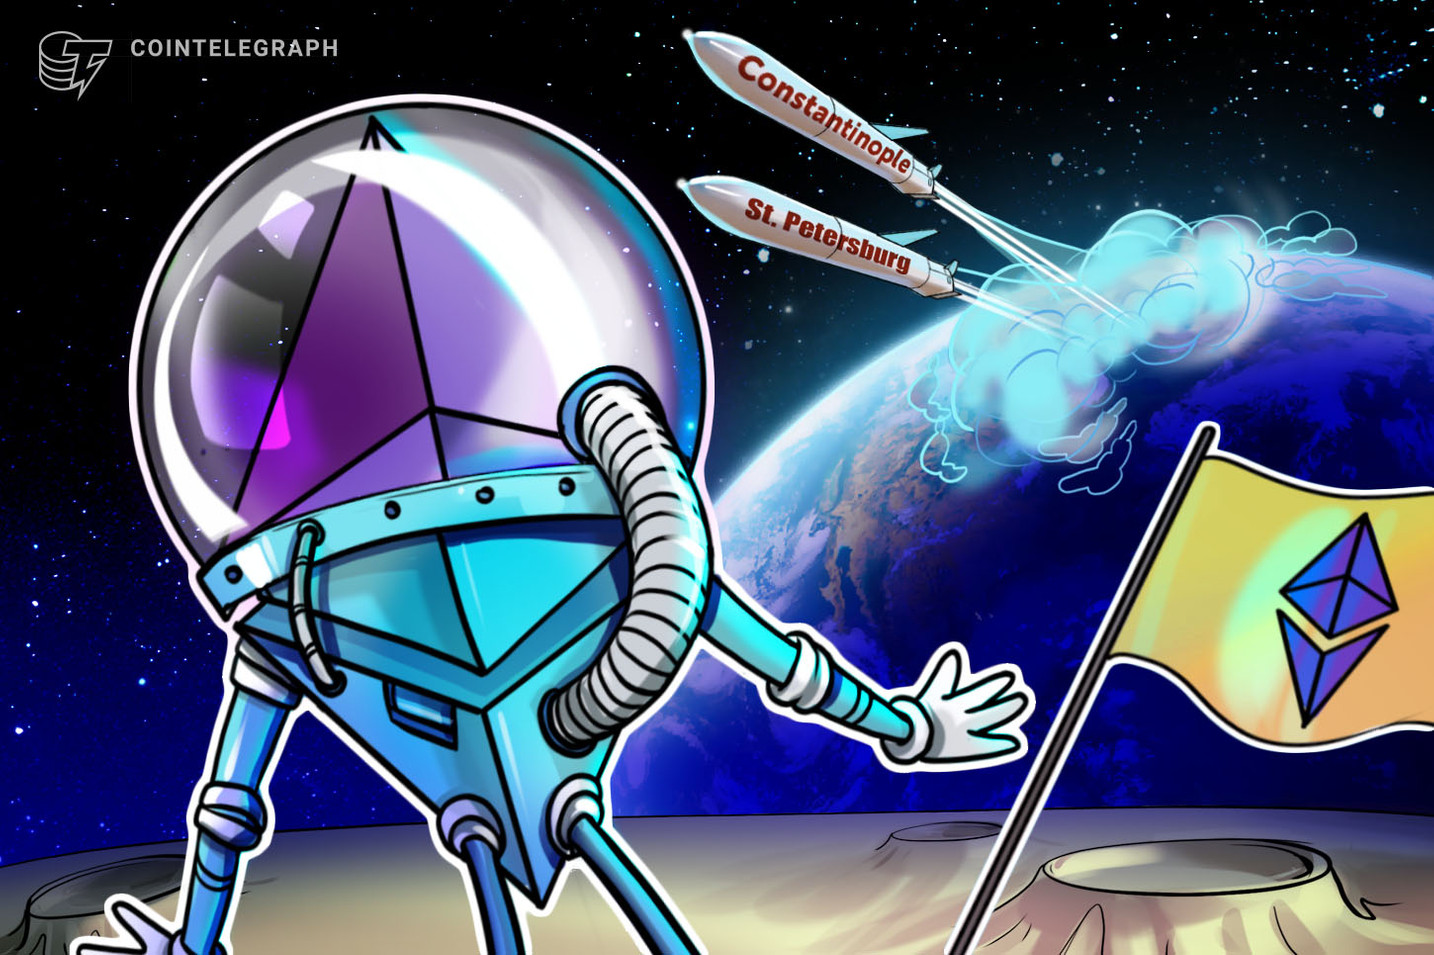 Ethereum's Constantinople, St. Petersburg Upgrades Set to Occur This Week